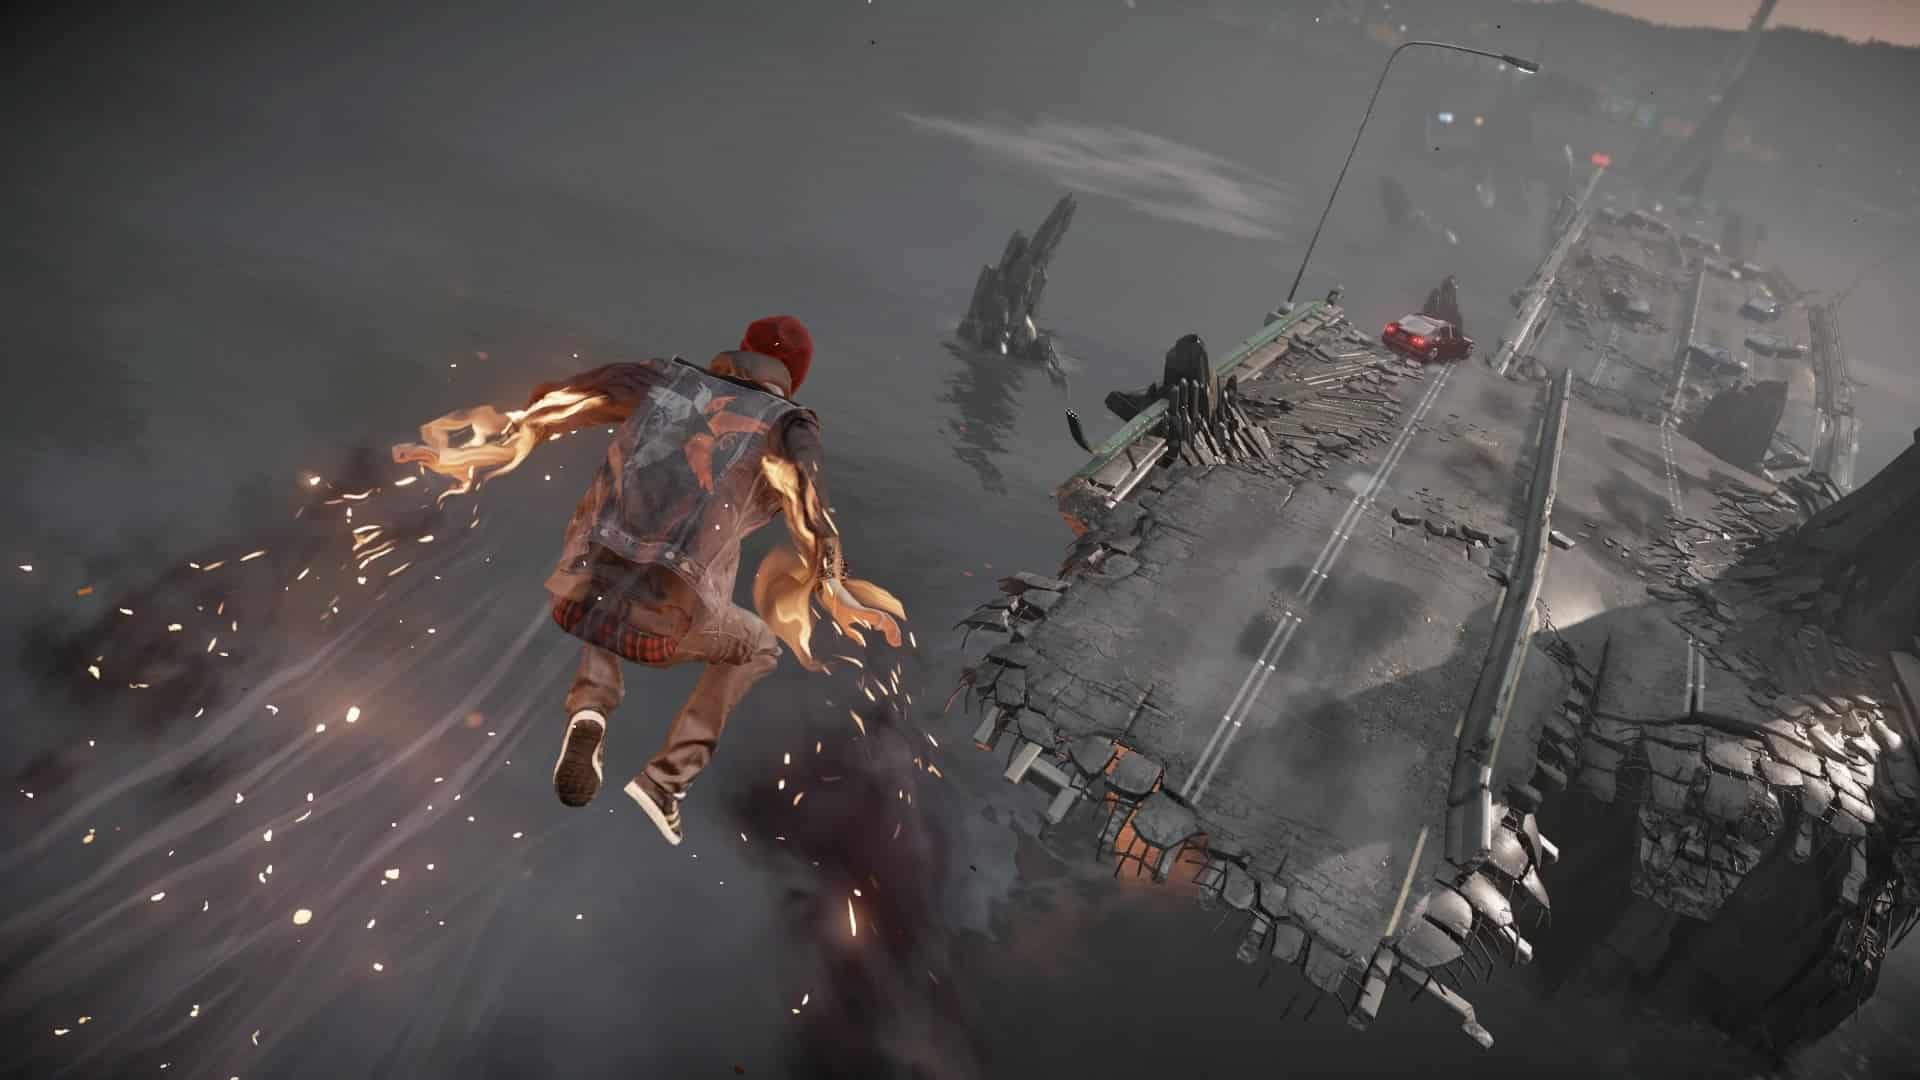 Infamous Second Son morality black and white does not work in this age of protest and dissent, Sucker Punch Productions